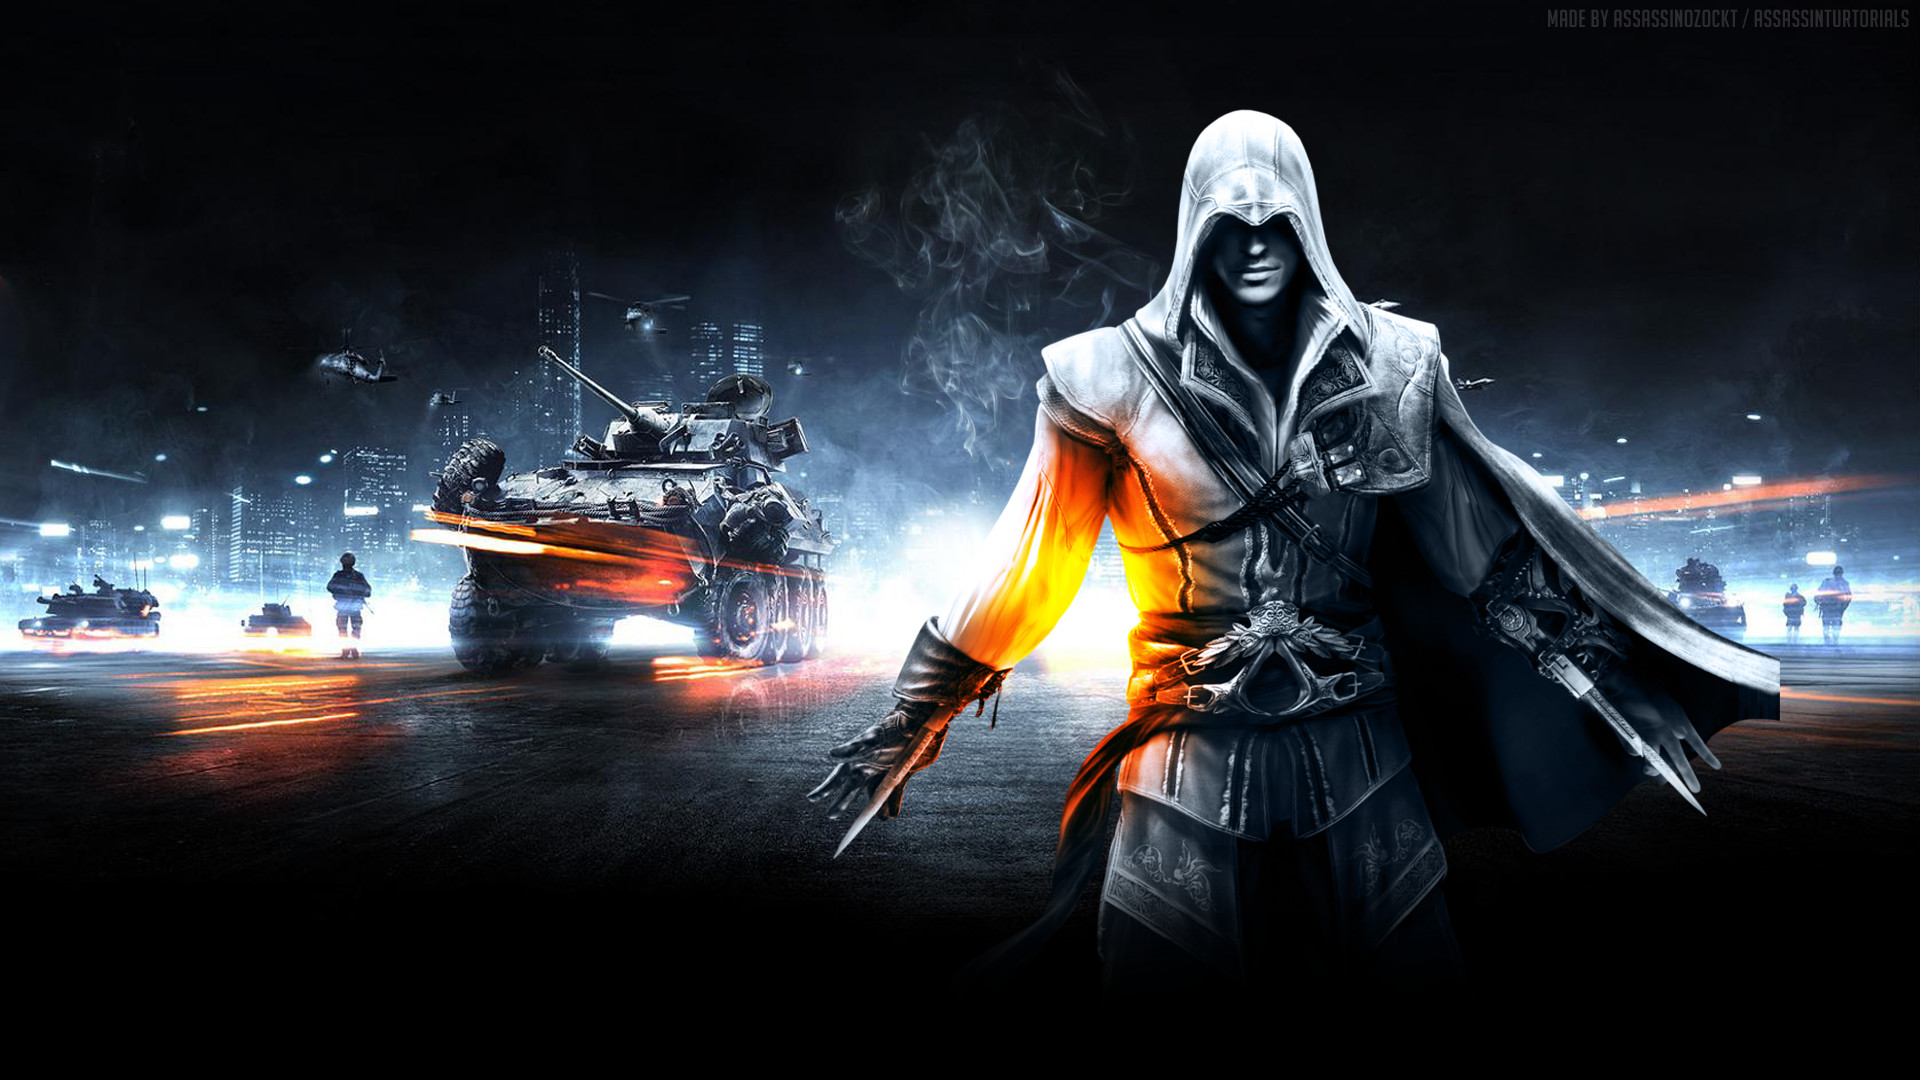 1920x1080 PC Gaming HD Wallpapers